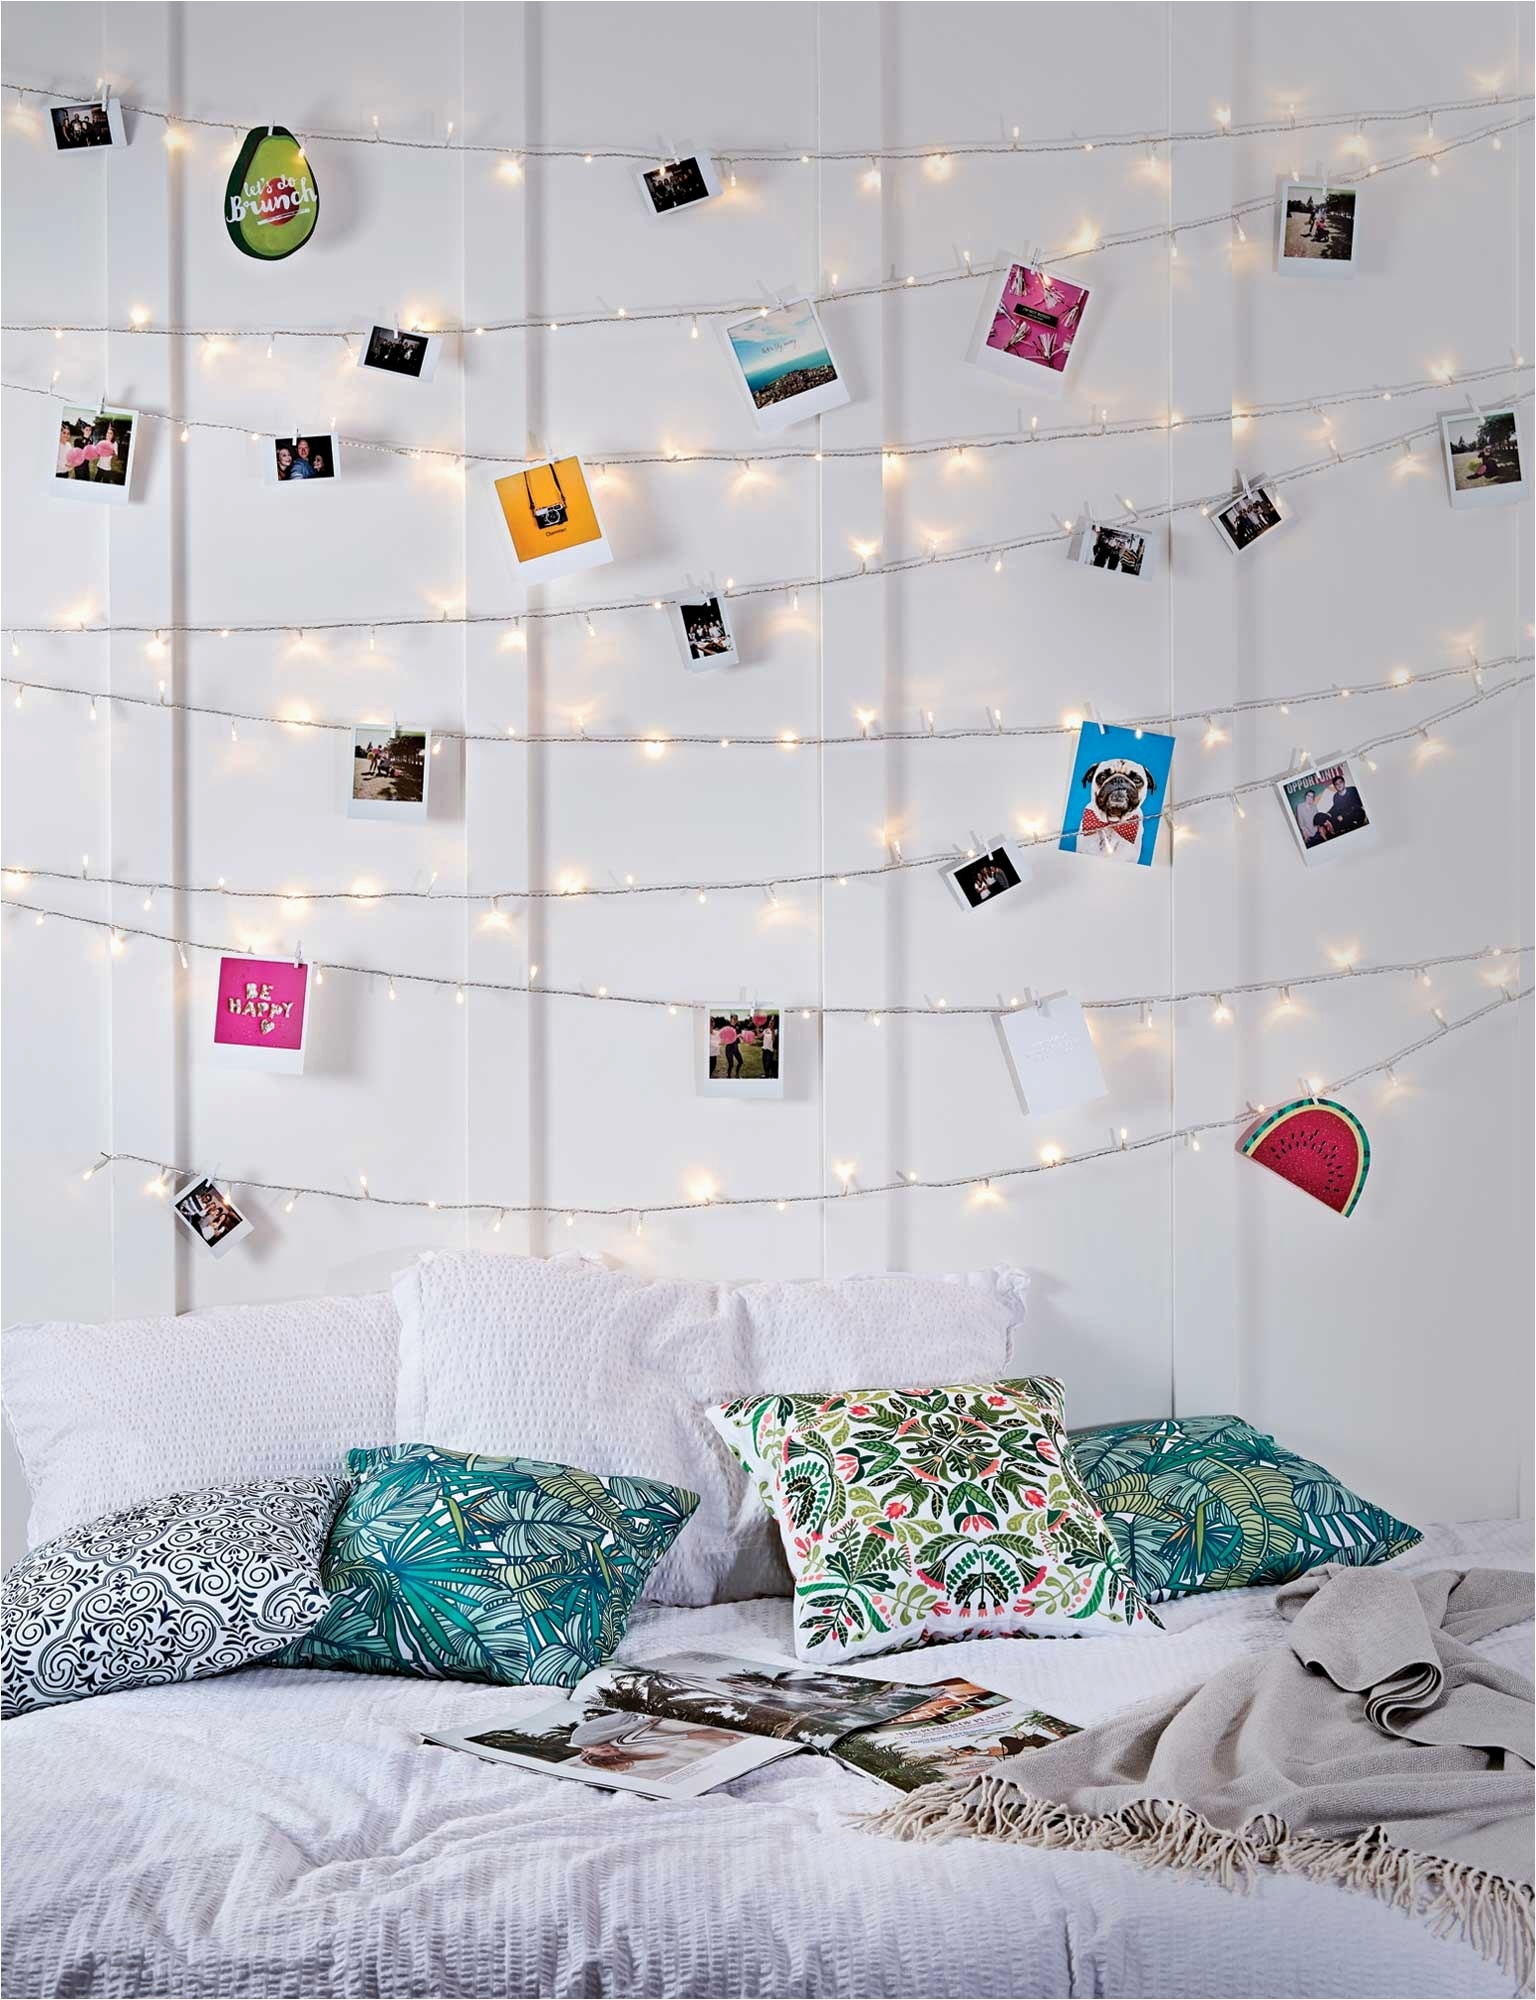 homemade wall decoration ideas for bedroom ... homemade wall design bedroom wall decoration amazing homemade wall CQFCZWY